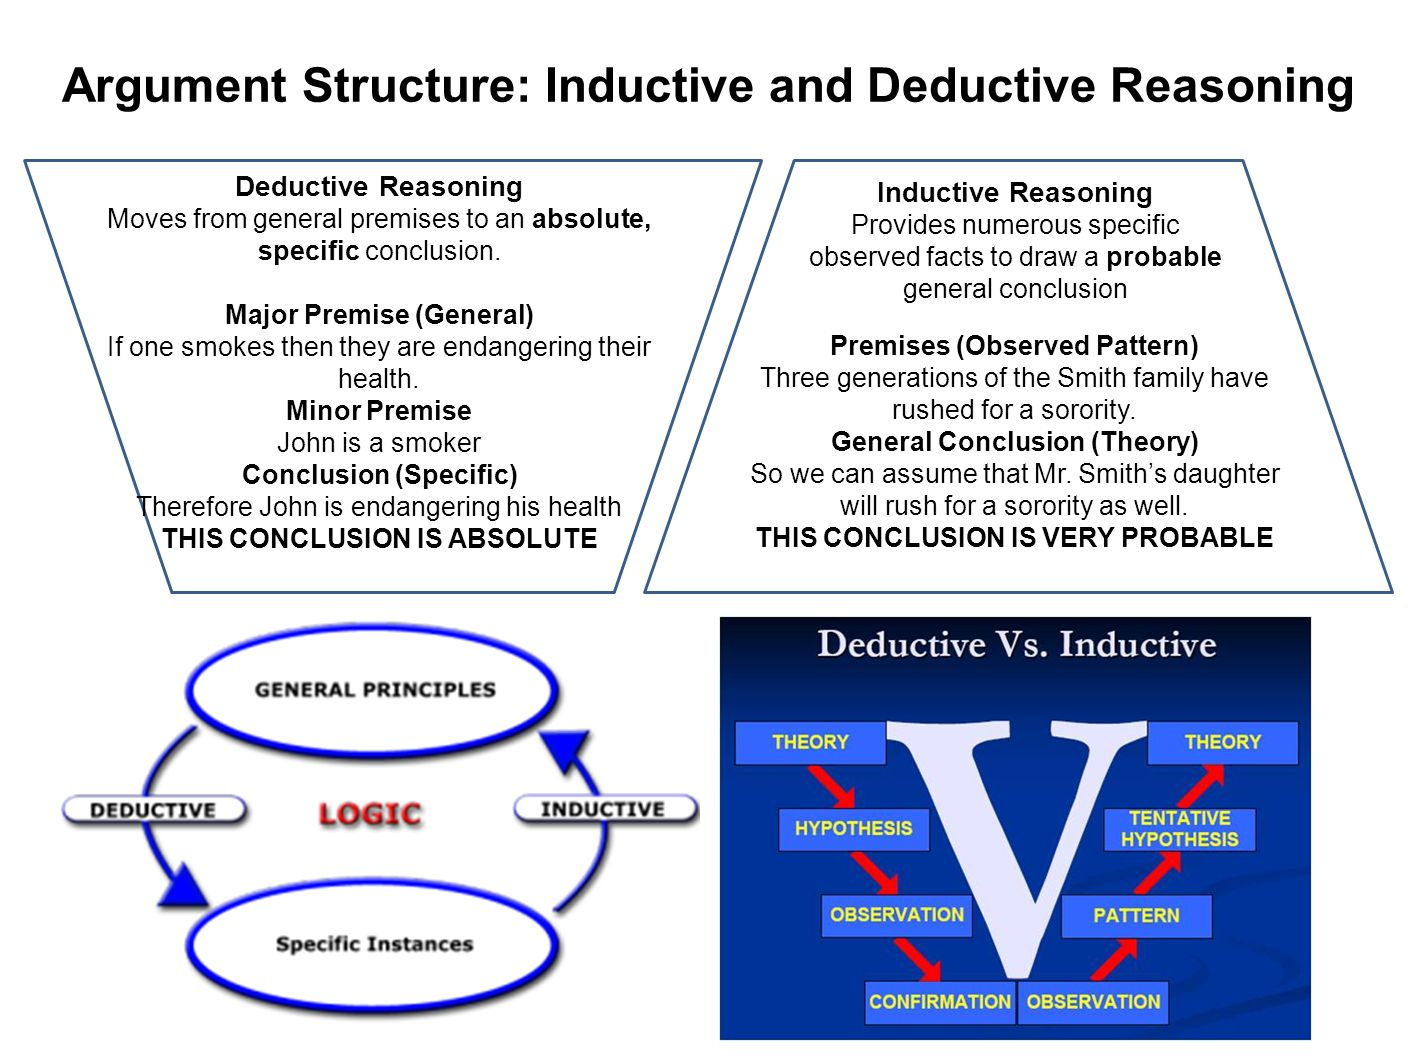 """inductive and deductive reasoning in argumentative essay Inductive reasoning can often be hidden inside a deductive argument that is, a generalization reached through inductive reasoning can be turned around and used as a starting """"truth"""" a deductive argument."""